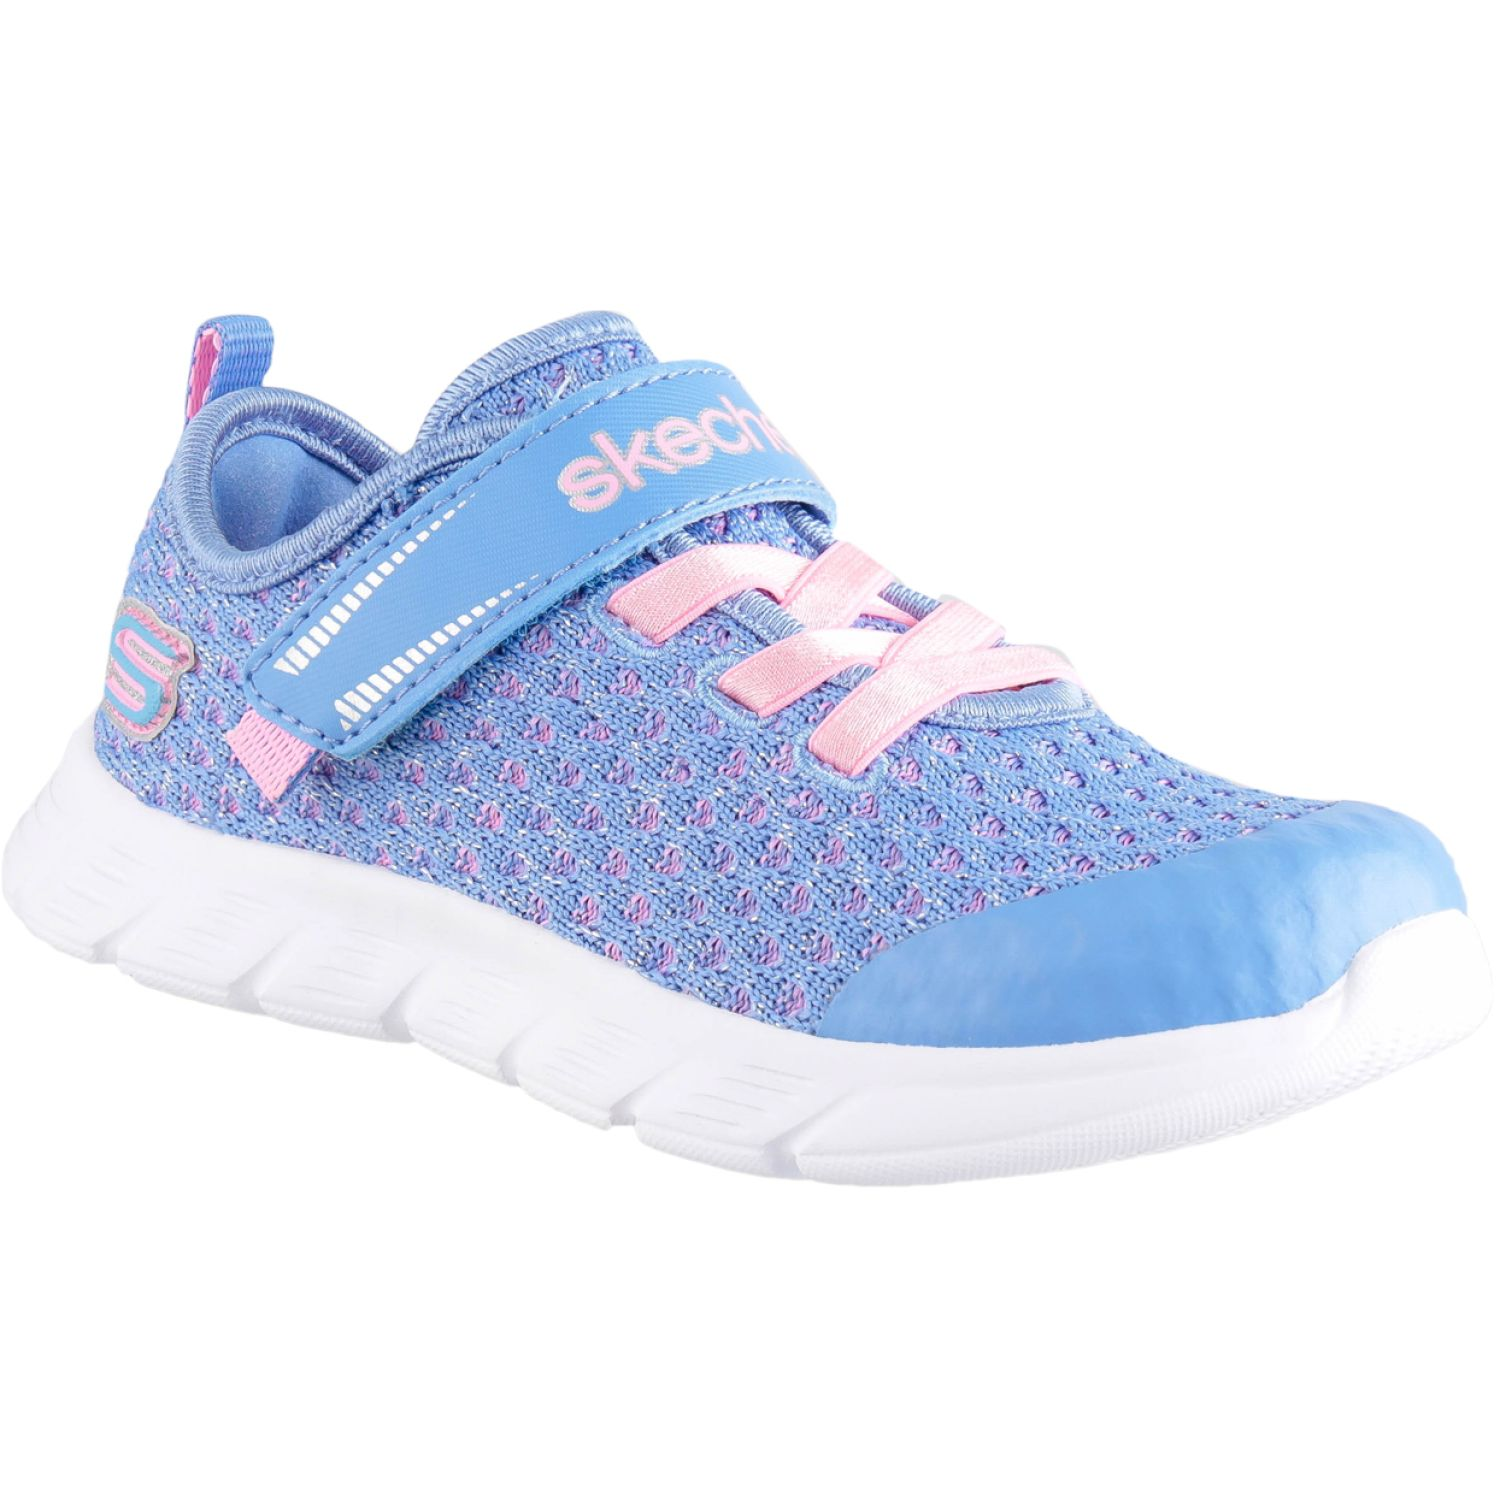 Skechers comfy flex - sparkle dash Lila Walking